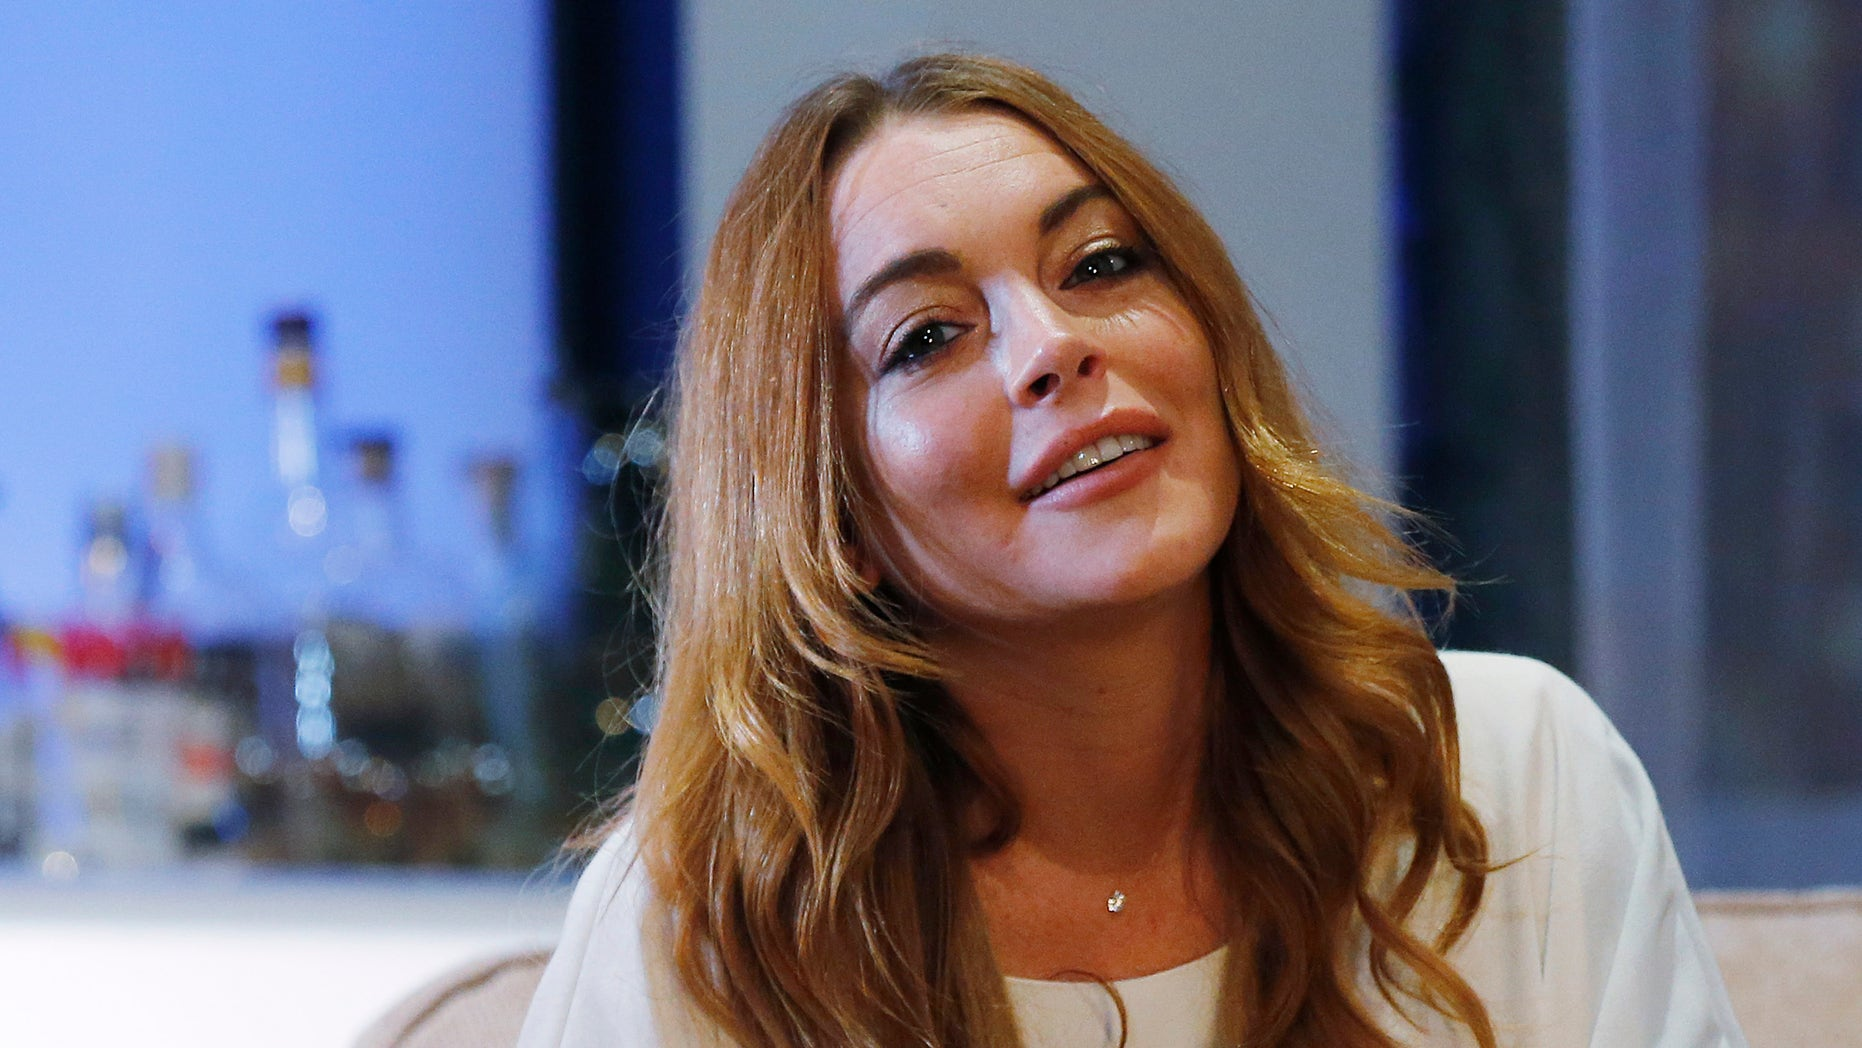 """September 30, 2014. Actress Lindsay Lohan rehearses a scene from """"Speed-the-Plow"""" by David Mamet at the Playhouse Theatre in London."""